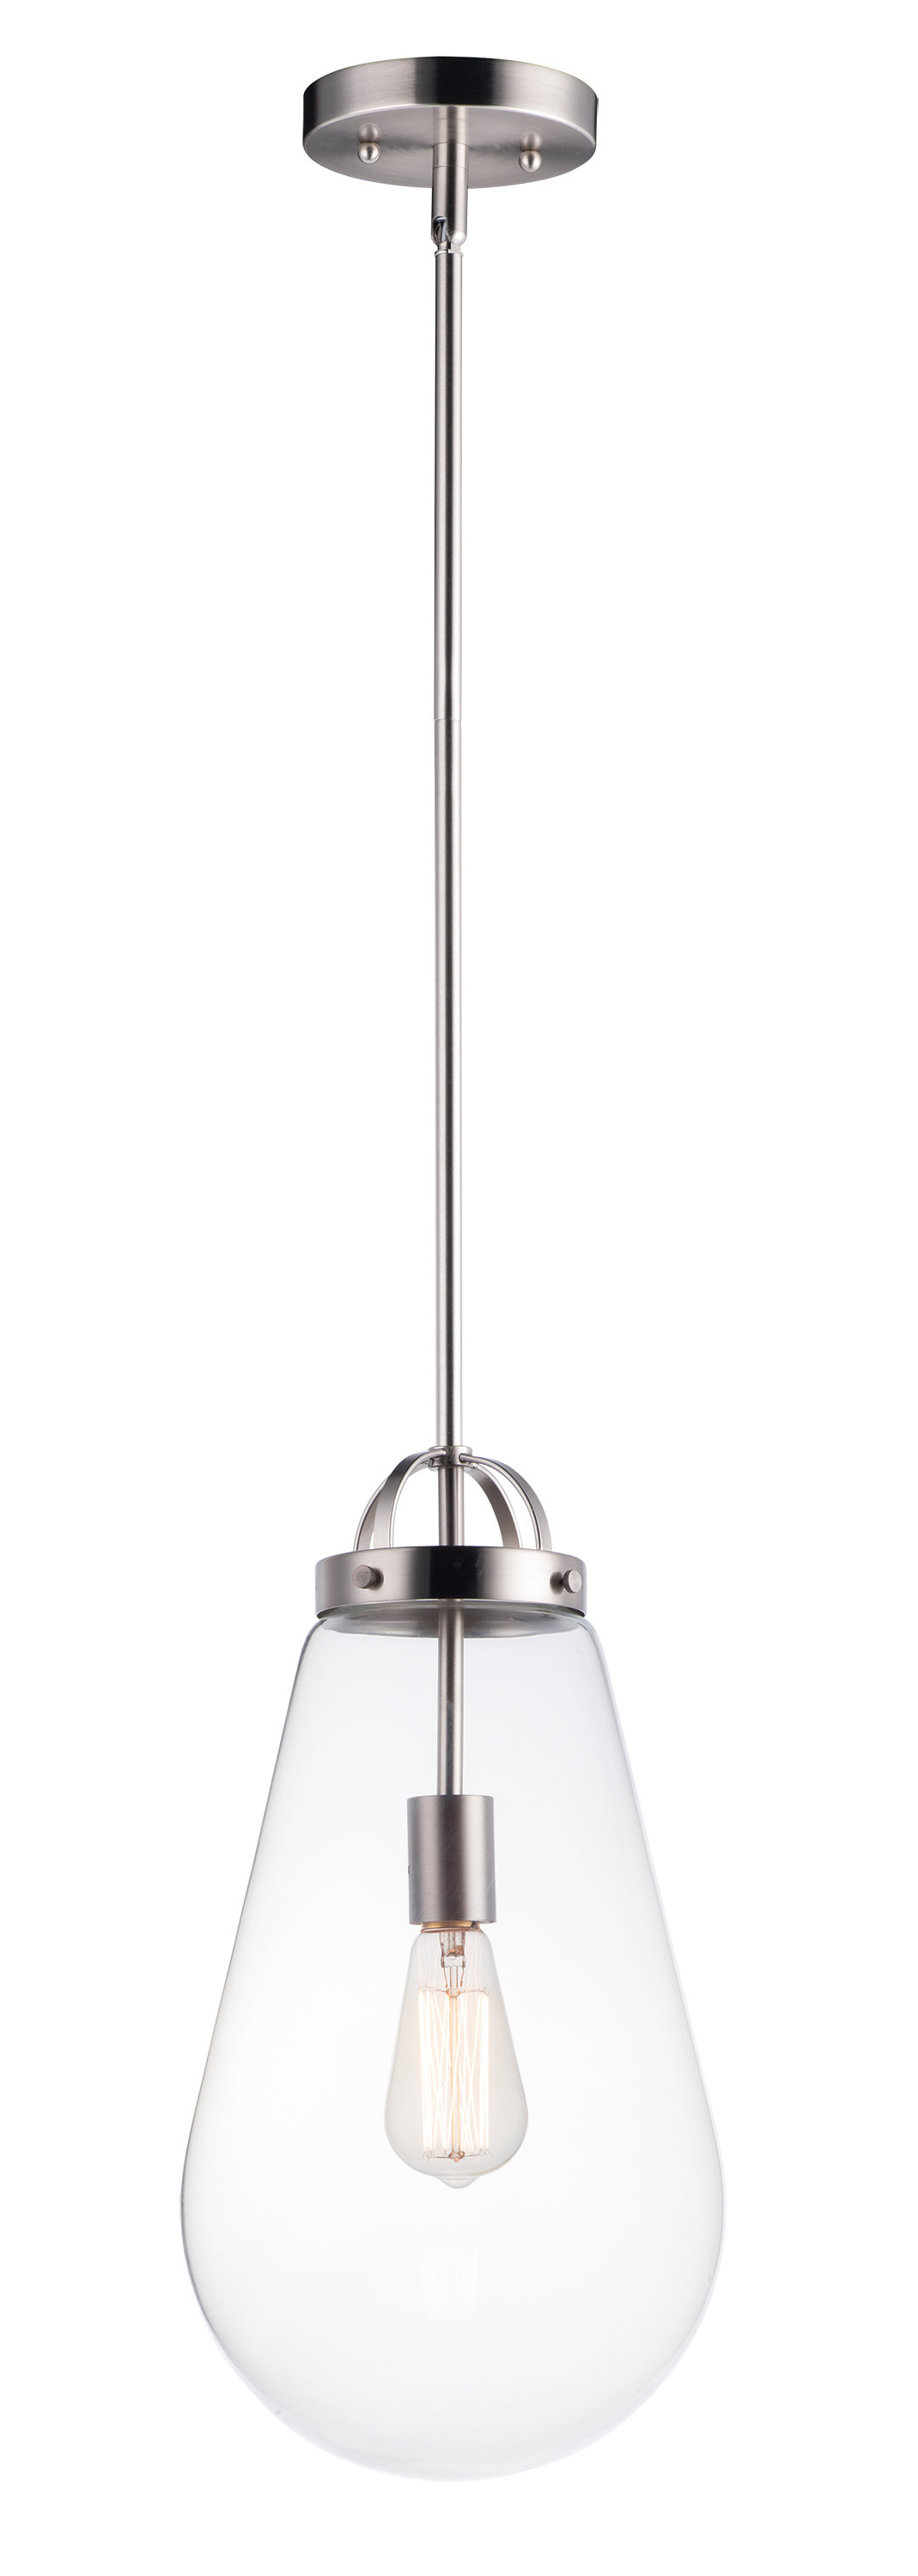 Kimsey 1-Light Teardrop Pendants with regard to Recent Kinbrae 1-Light Teardrop Pendant